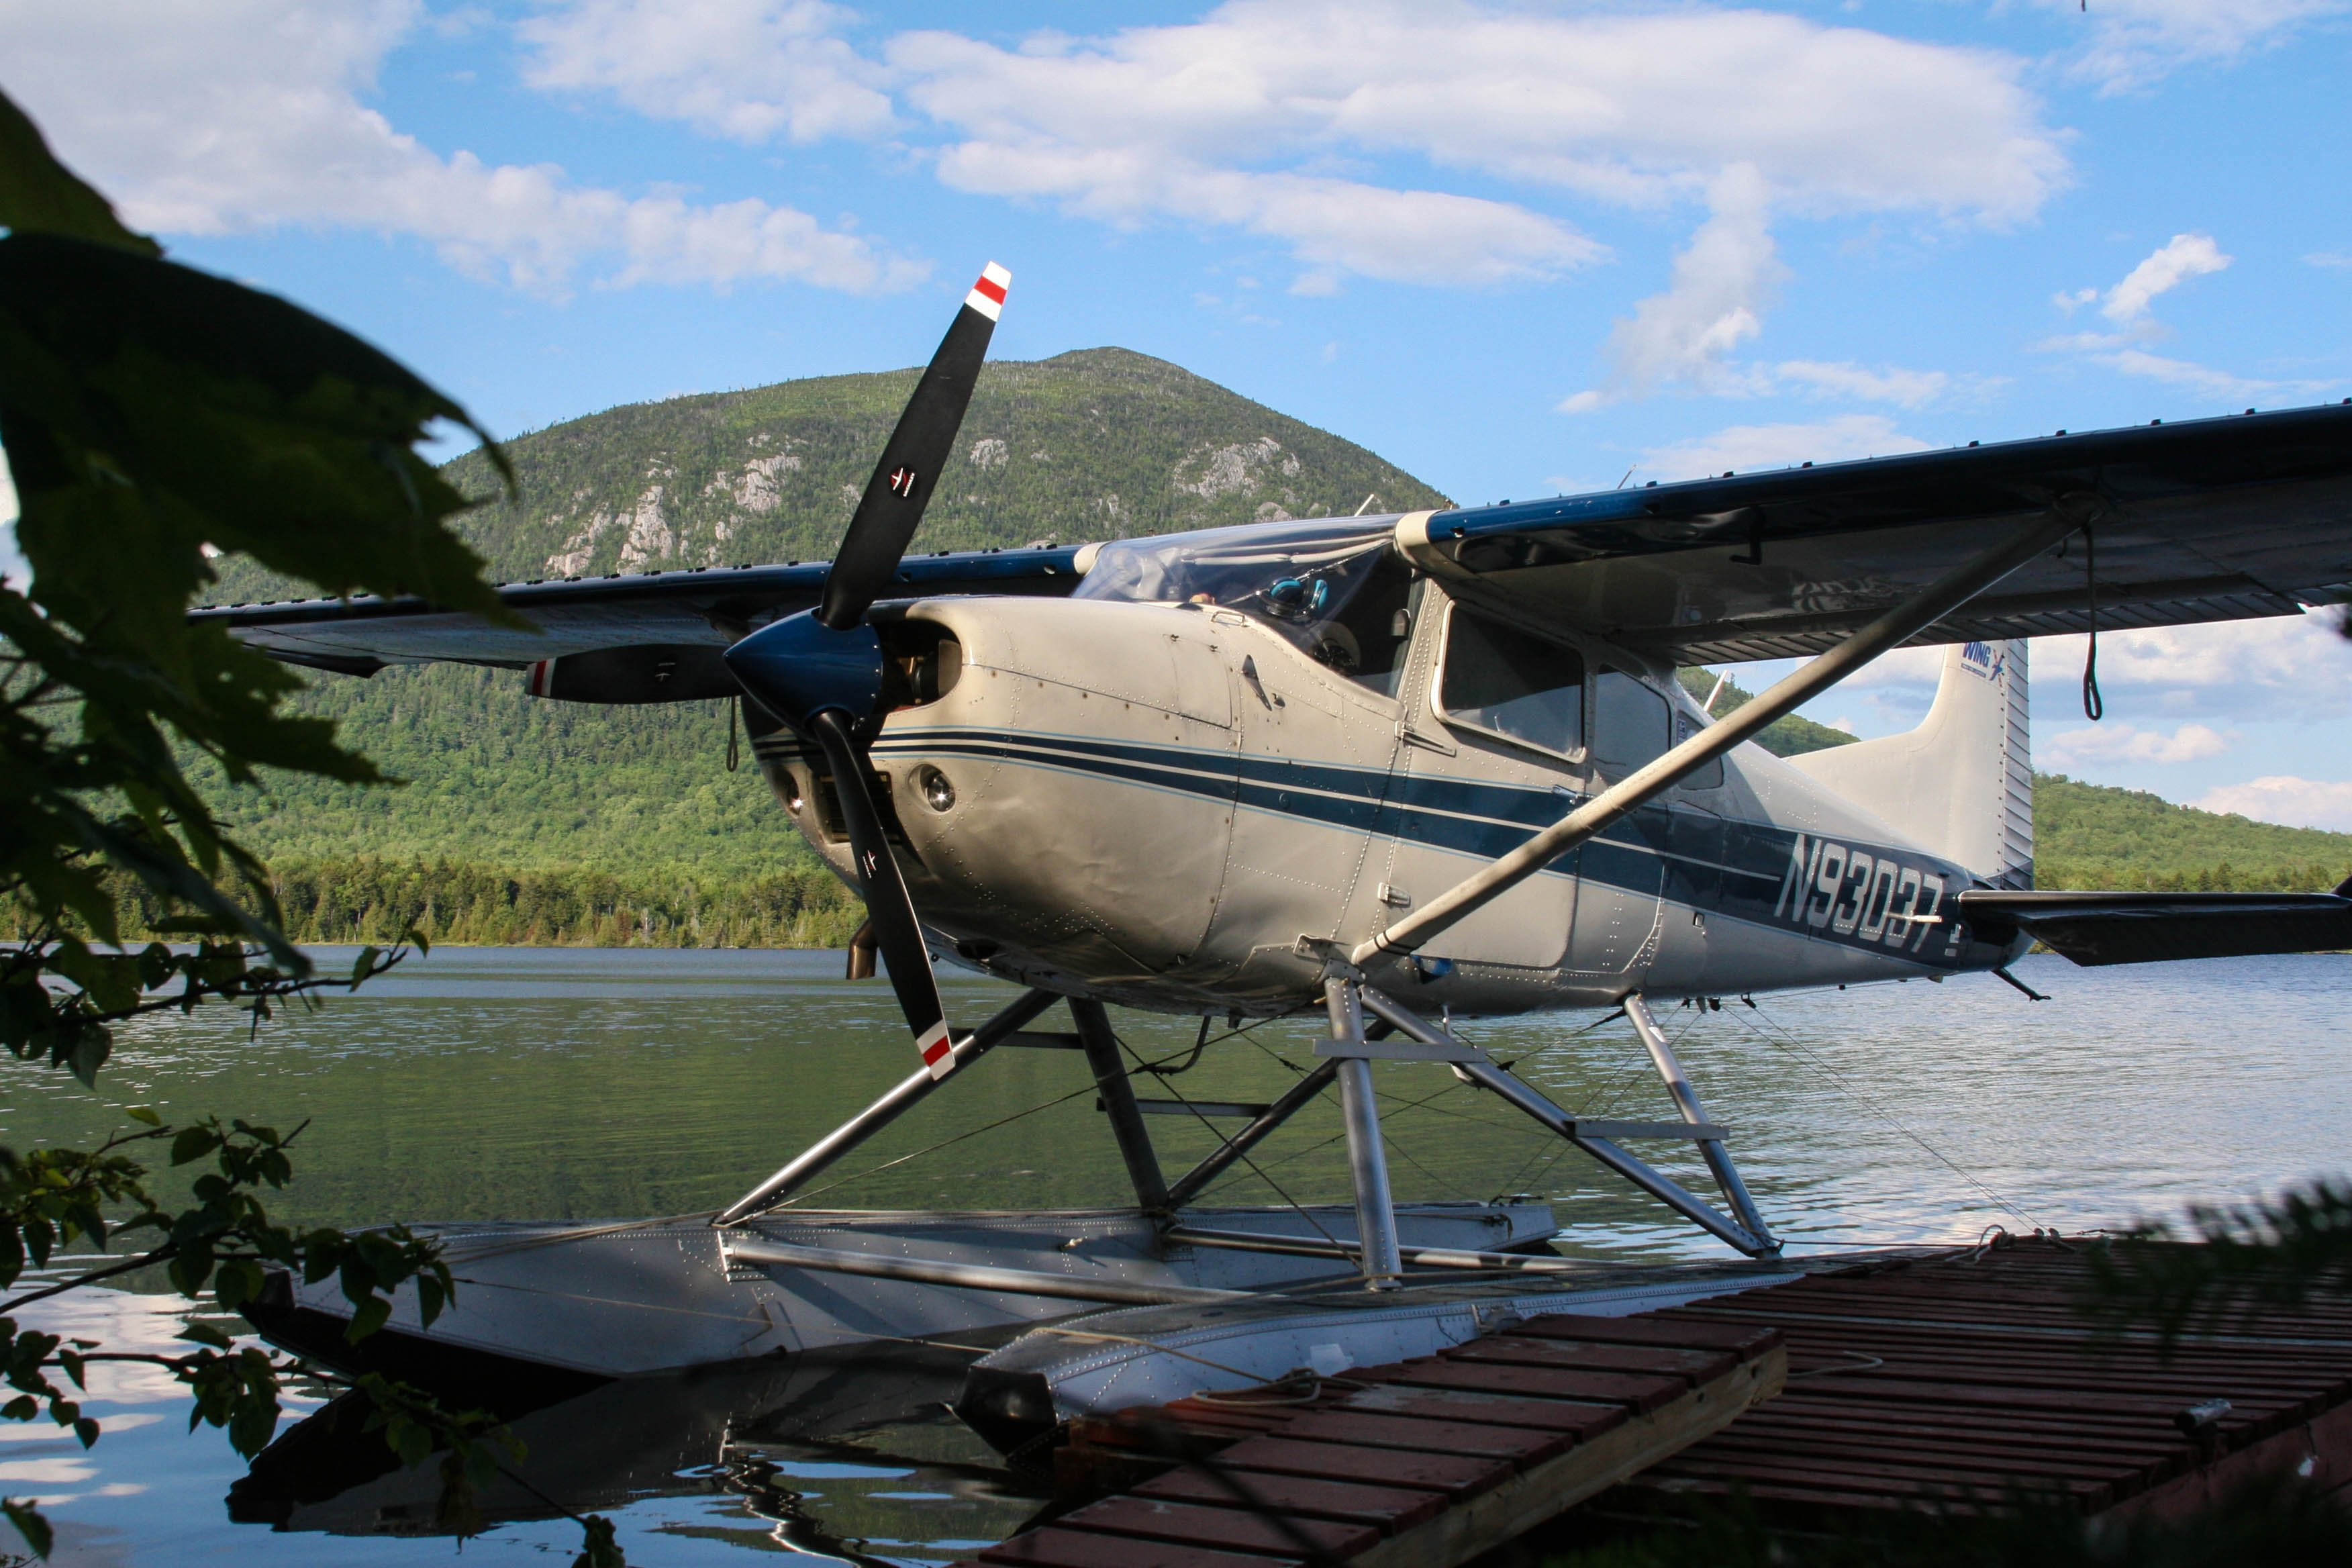 Fly in to camp on a float plane